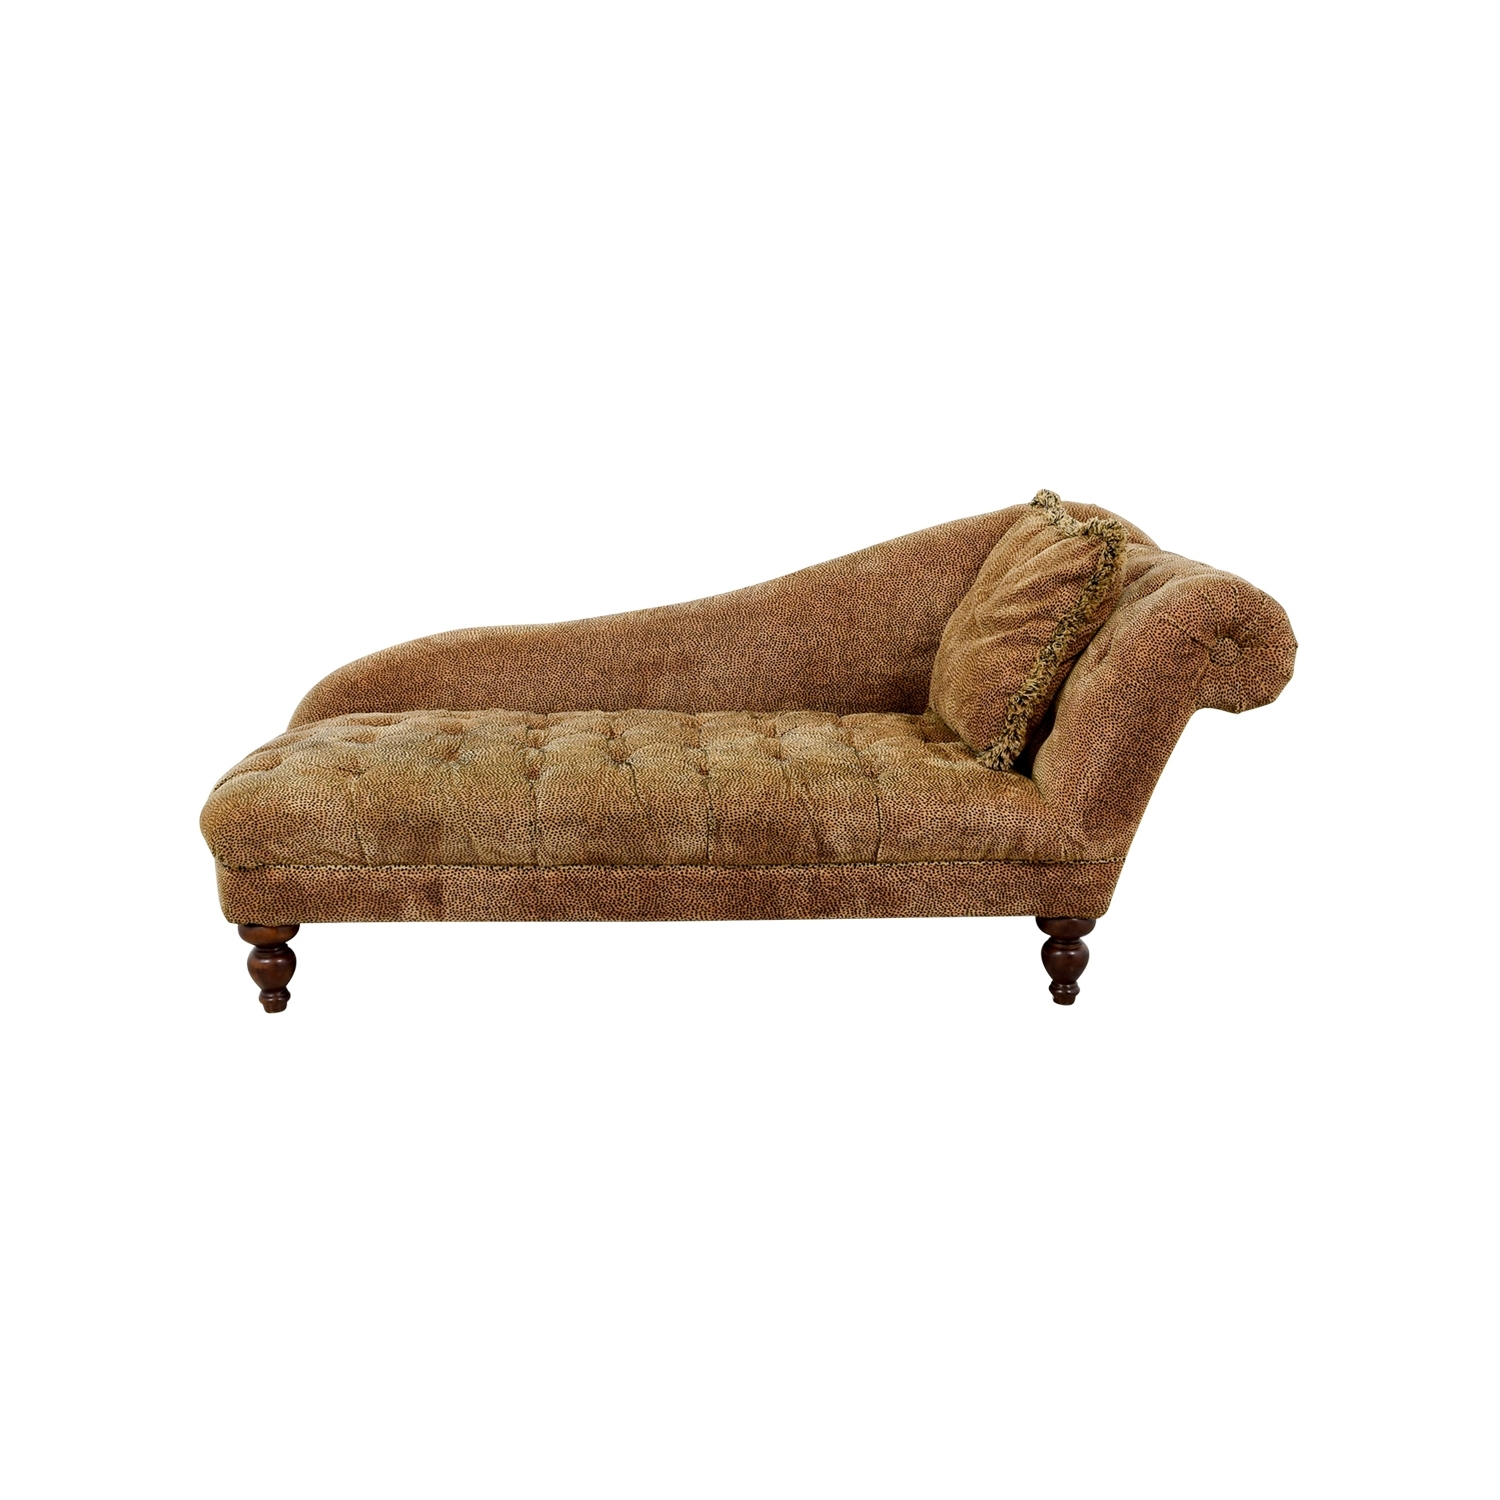 [%73% Off – Domain Home Furnishings Domain Home Furnishings Leopard Throughout Preferred Leopard Chaise Lounges|Leopard Chaise Lounges With Preferred 73% Off – Domain Home Furnishings Domain Home Furnishings Leopard|Latest Leopard Chaise Lounges Intended For 73% Off – Domain Home Furnishings Domain Home Furnishings Leopard|Newest 73% Off – Domain Home Furnishings Domain Home Furnishings Leopard For Leopard Chaise Lounges%] (View 3 of 15)